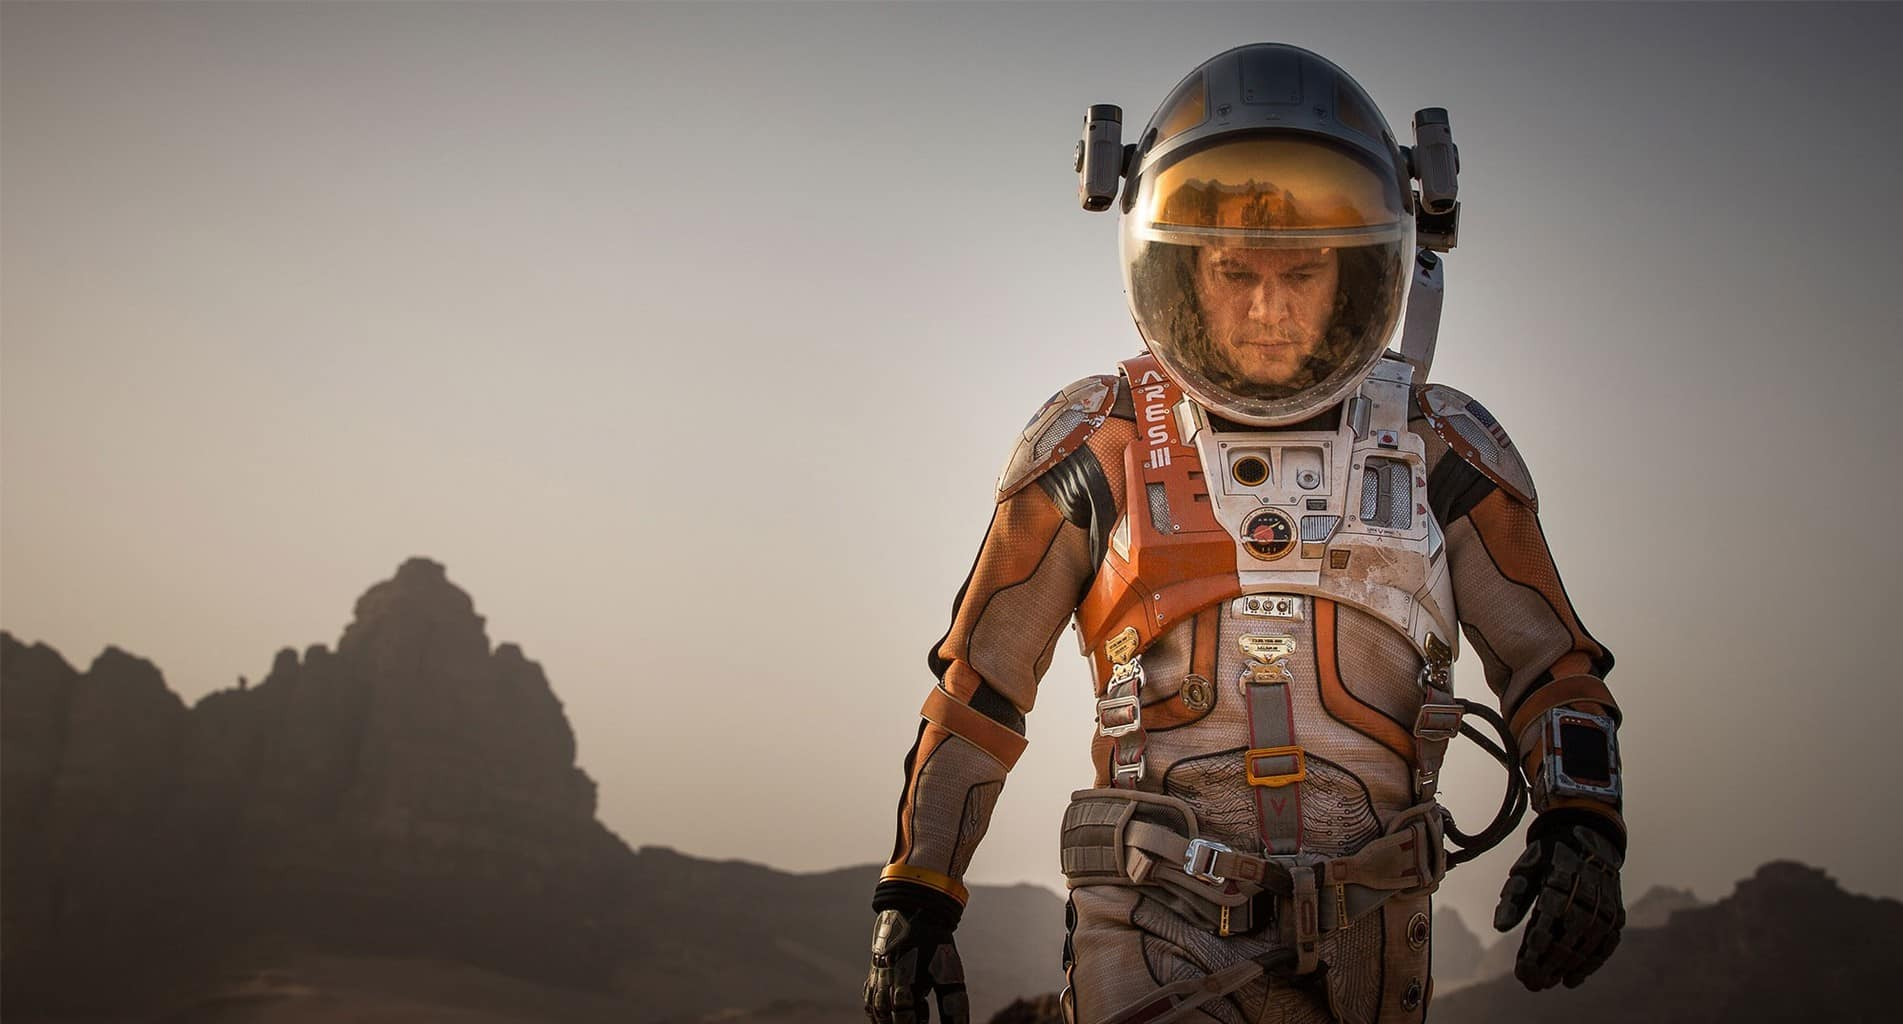 film reviews | movies | features | BRWC THE BRWC Review: The Martian (12A)